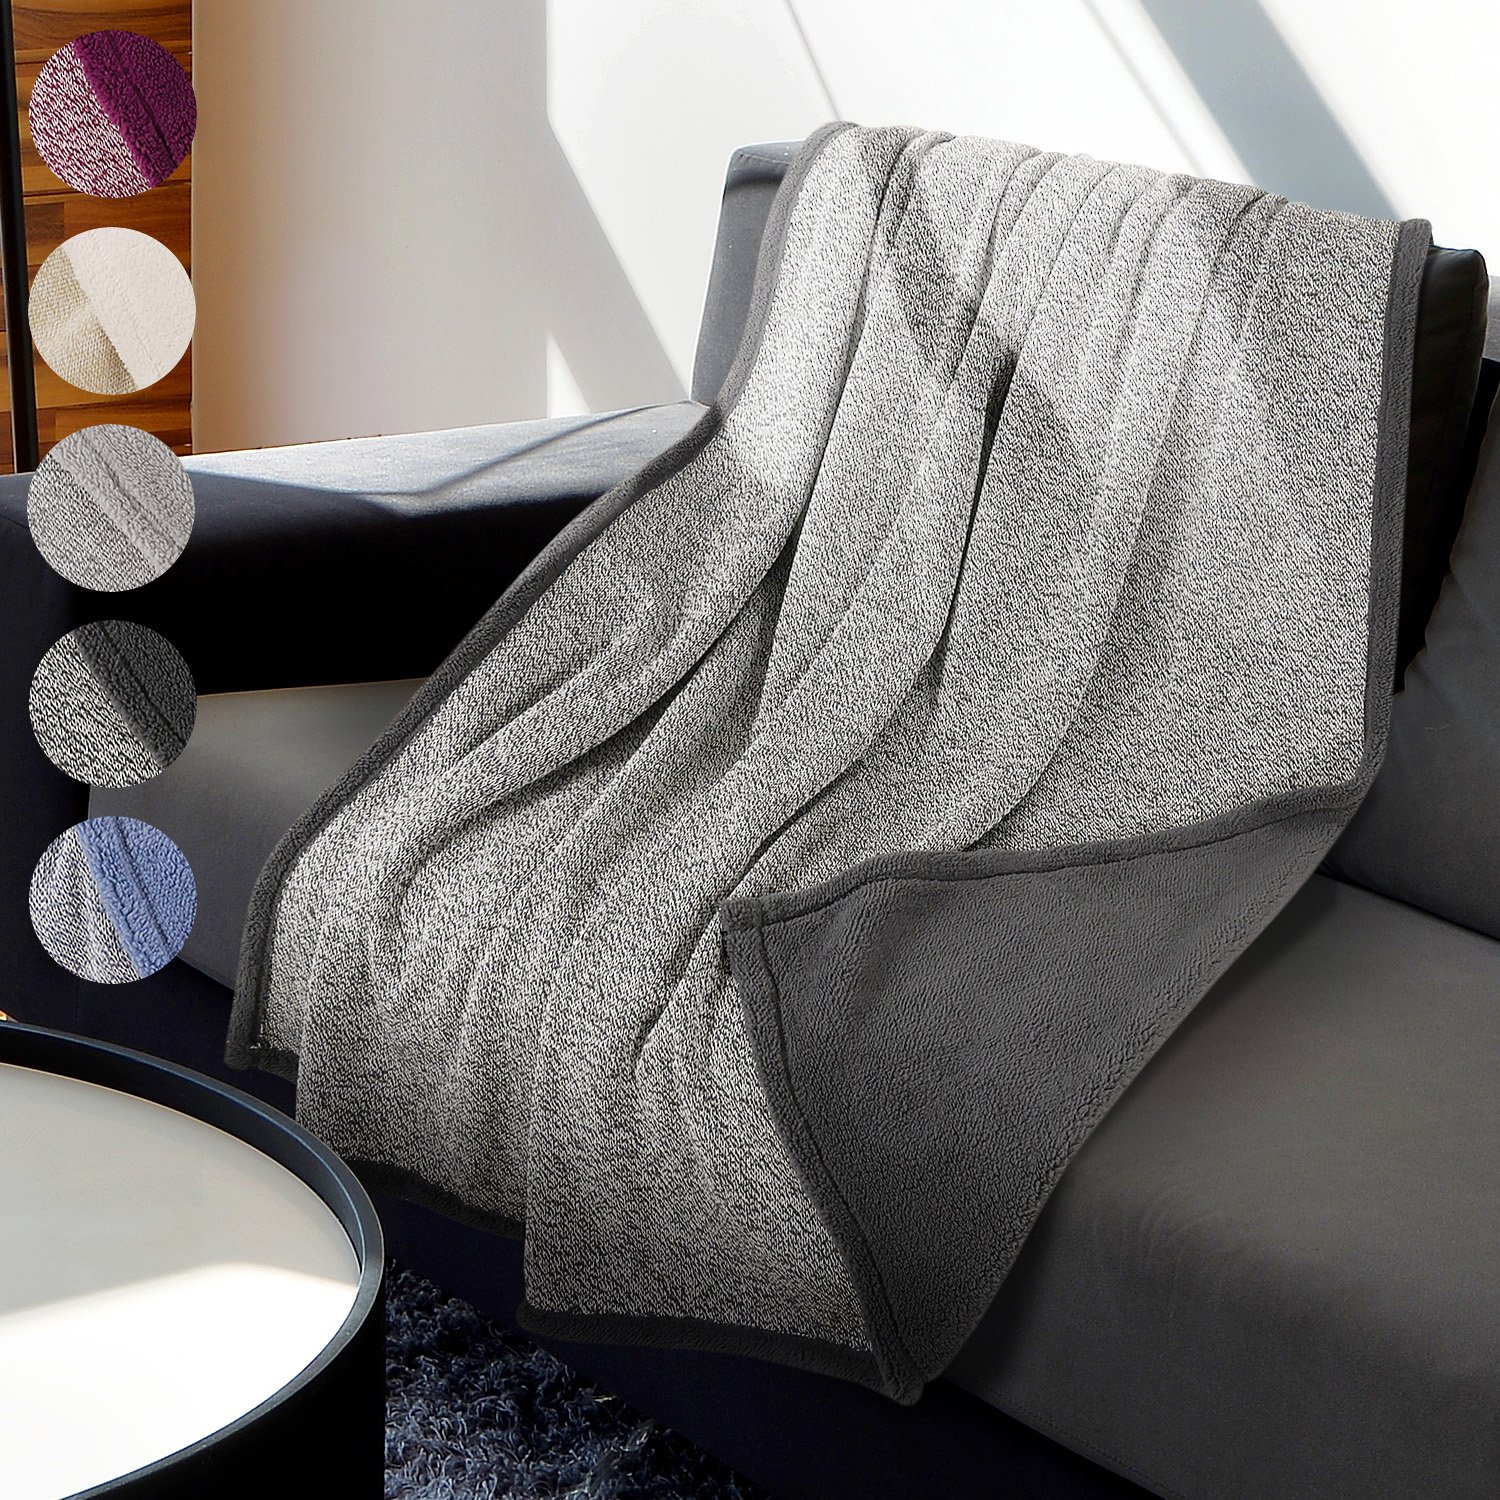 Sherpa Throw Blanket Super Soft Cozy with Plush Fleece for Coach and Bed | Size 50''x 60'' Reversible Warm Knitted Blanket for All Season Dark Grey